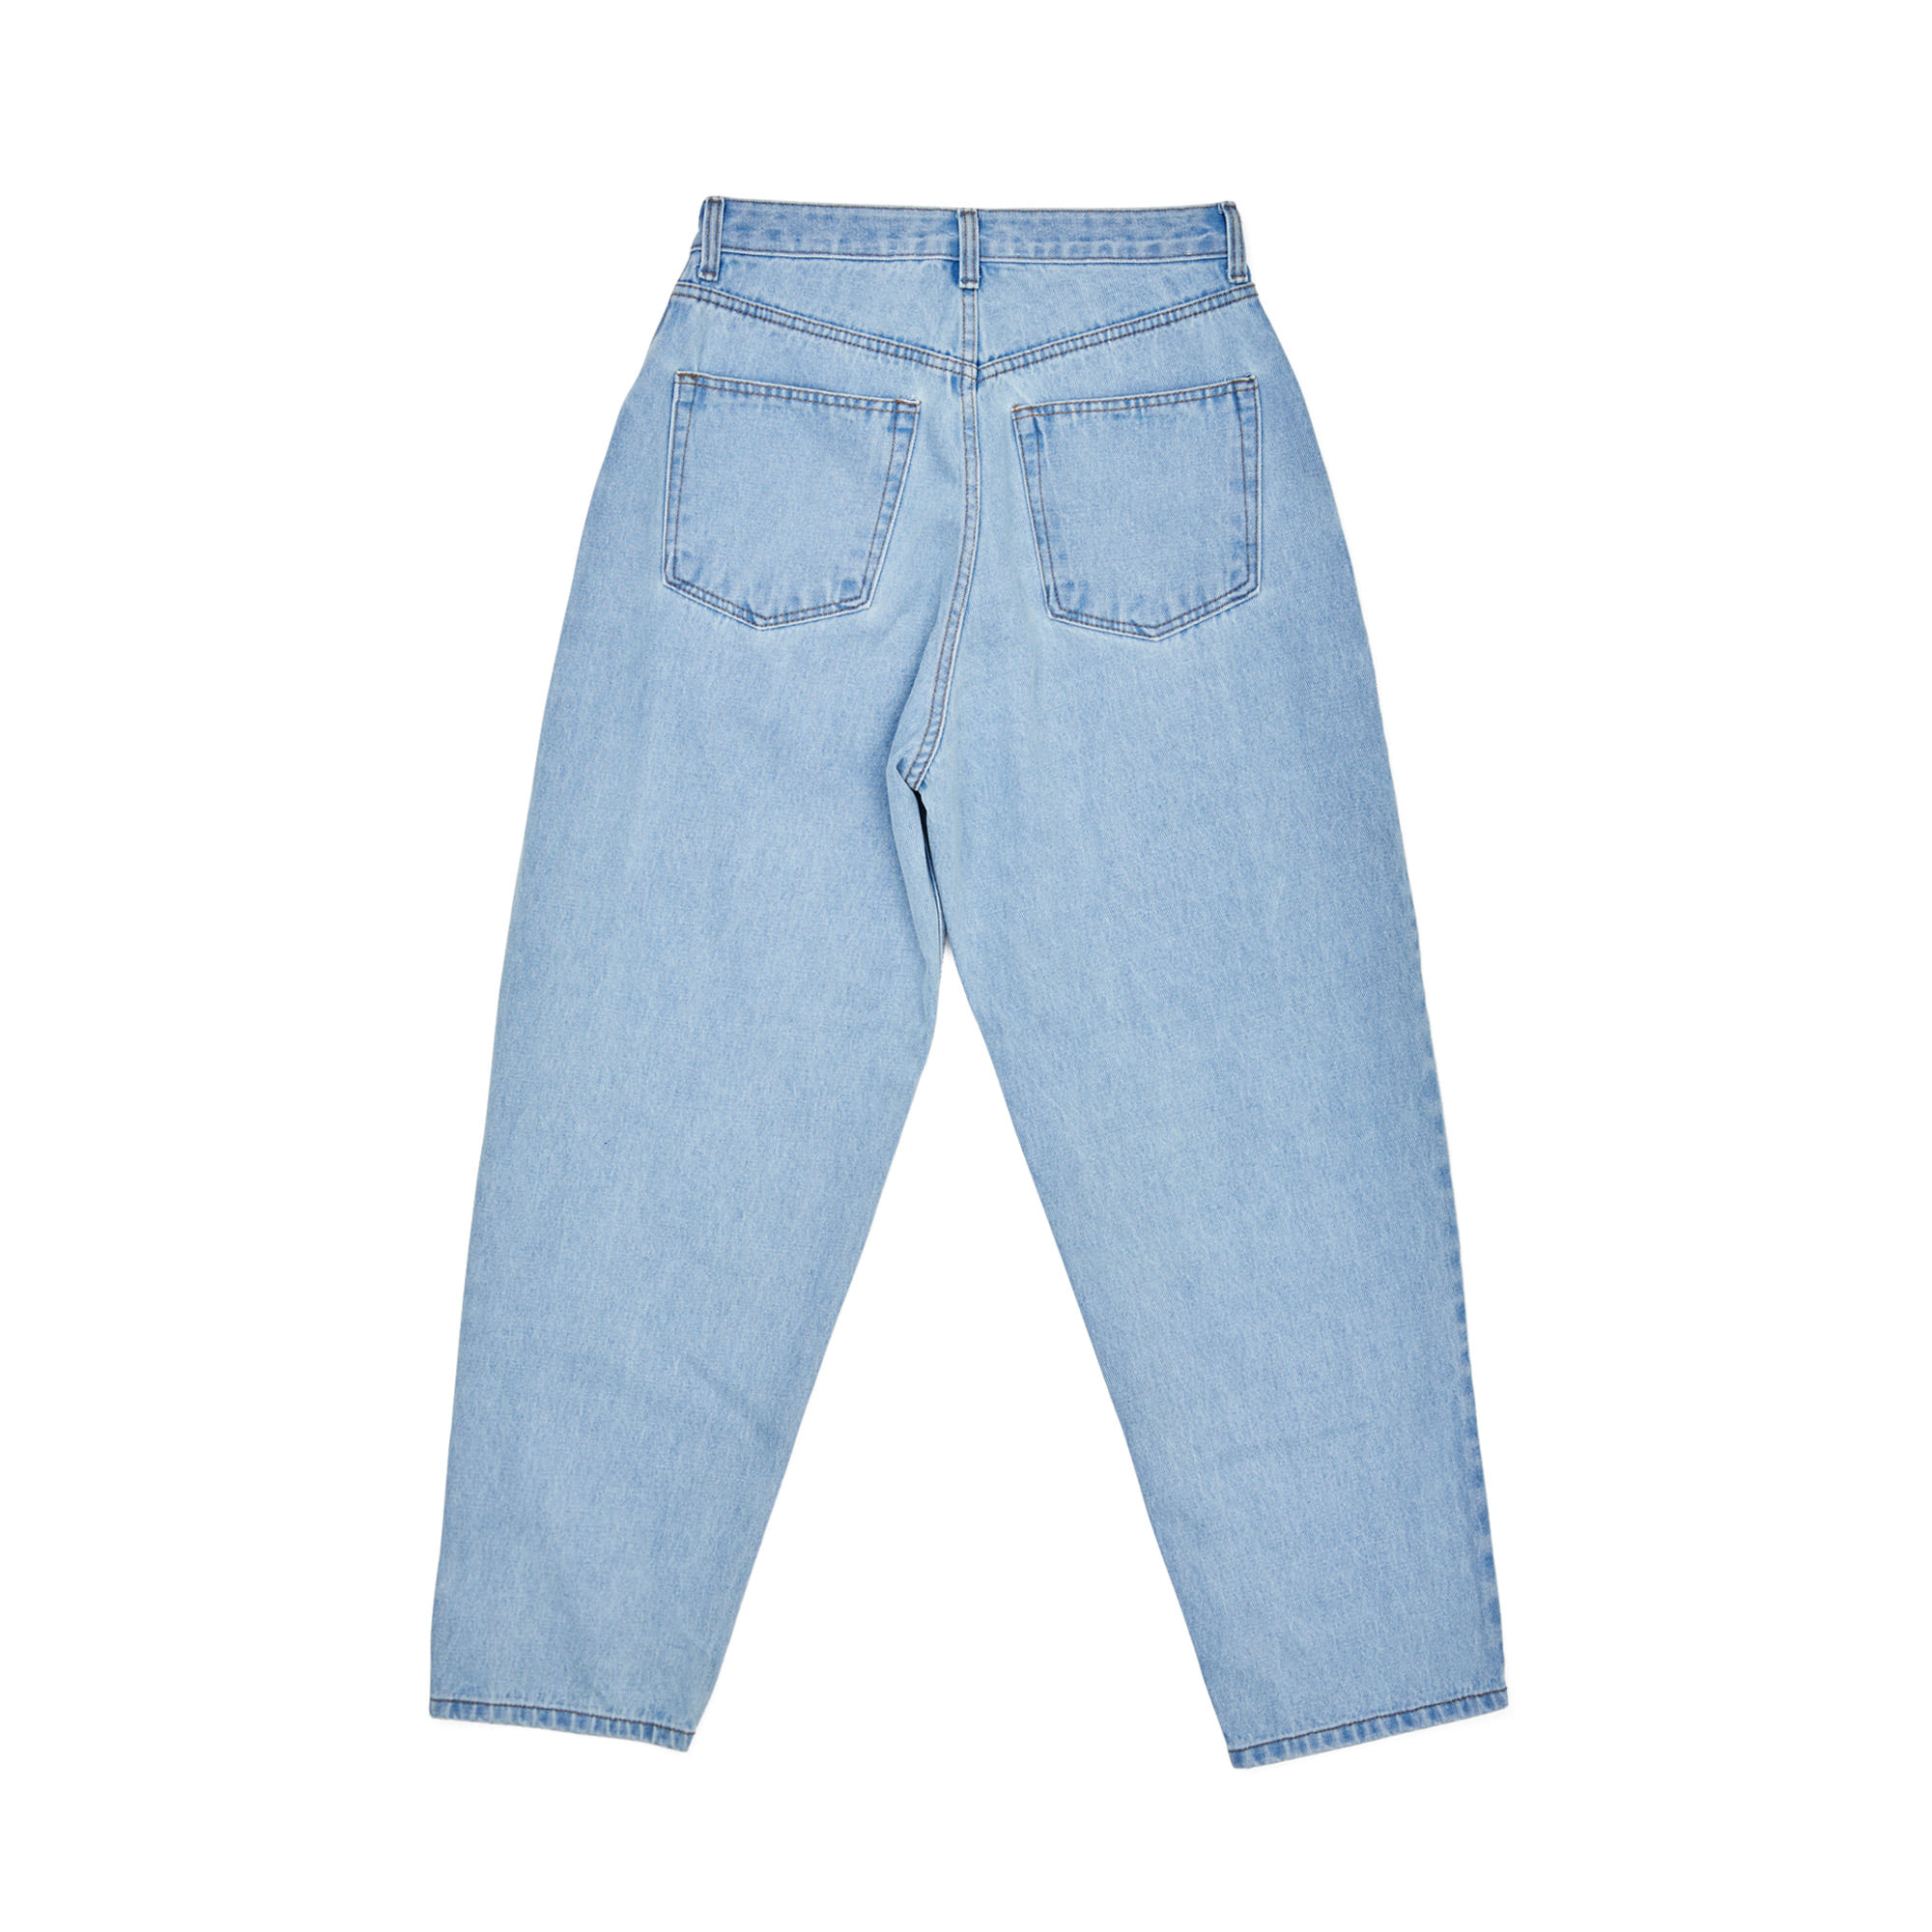 MID90S LOOSE FIT BAGGY DENIM PANTS LIGHT BLUE